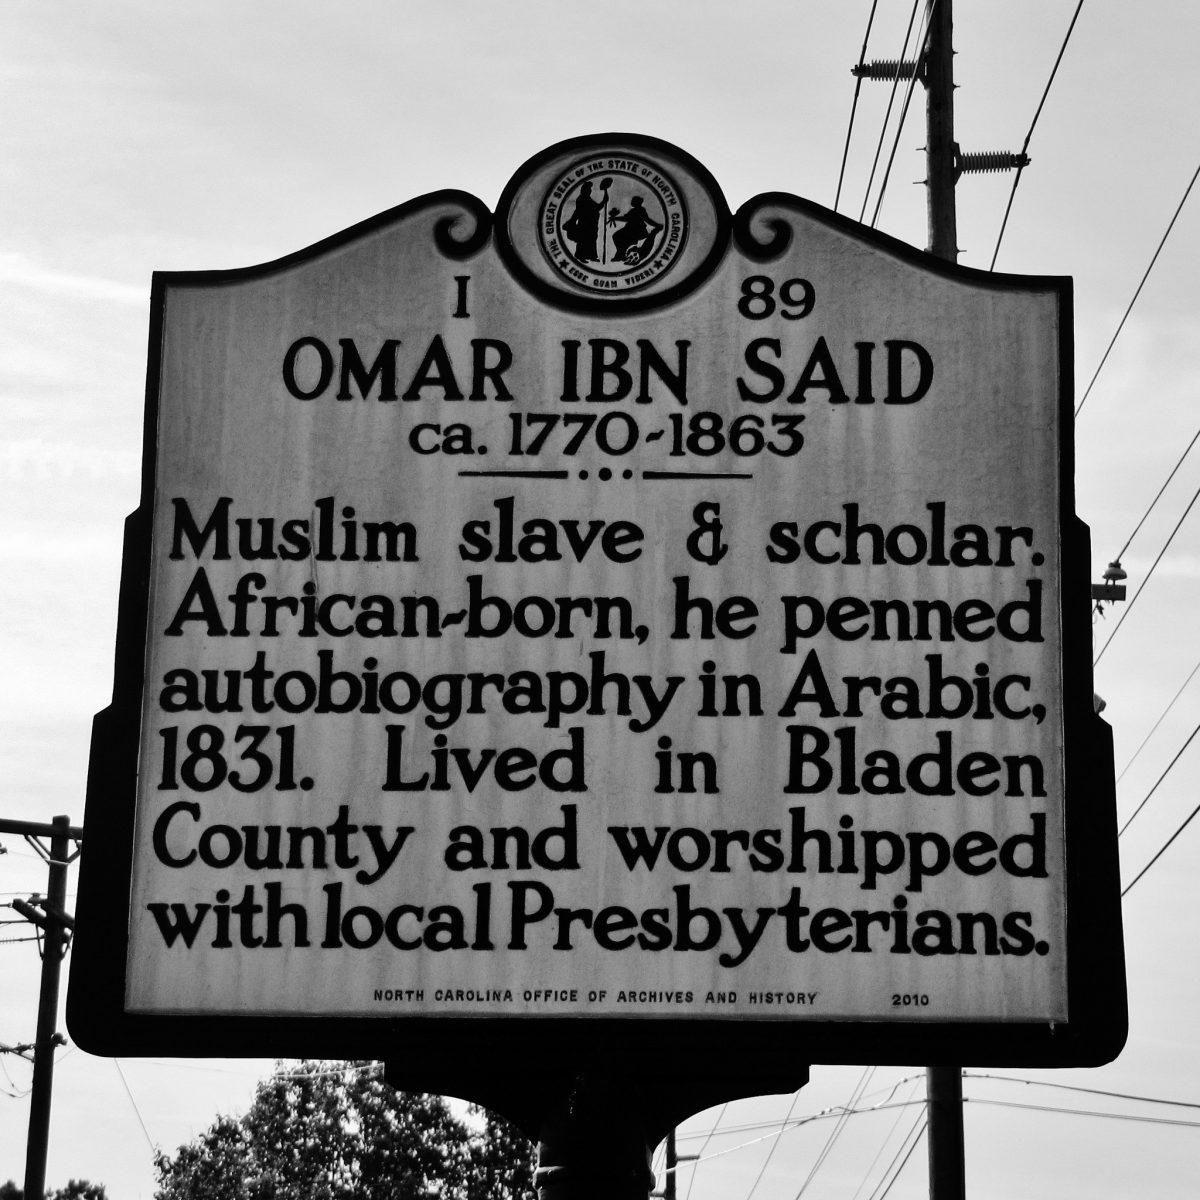 The historic marker for Omar Ibn Said is on Murchison Road, North Carolina Highway 210 in Fayetteville, North Carolina in Cumberland County.